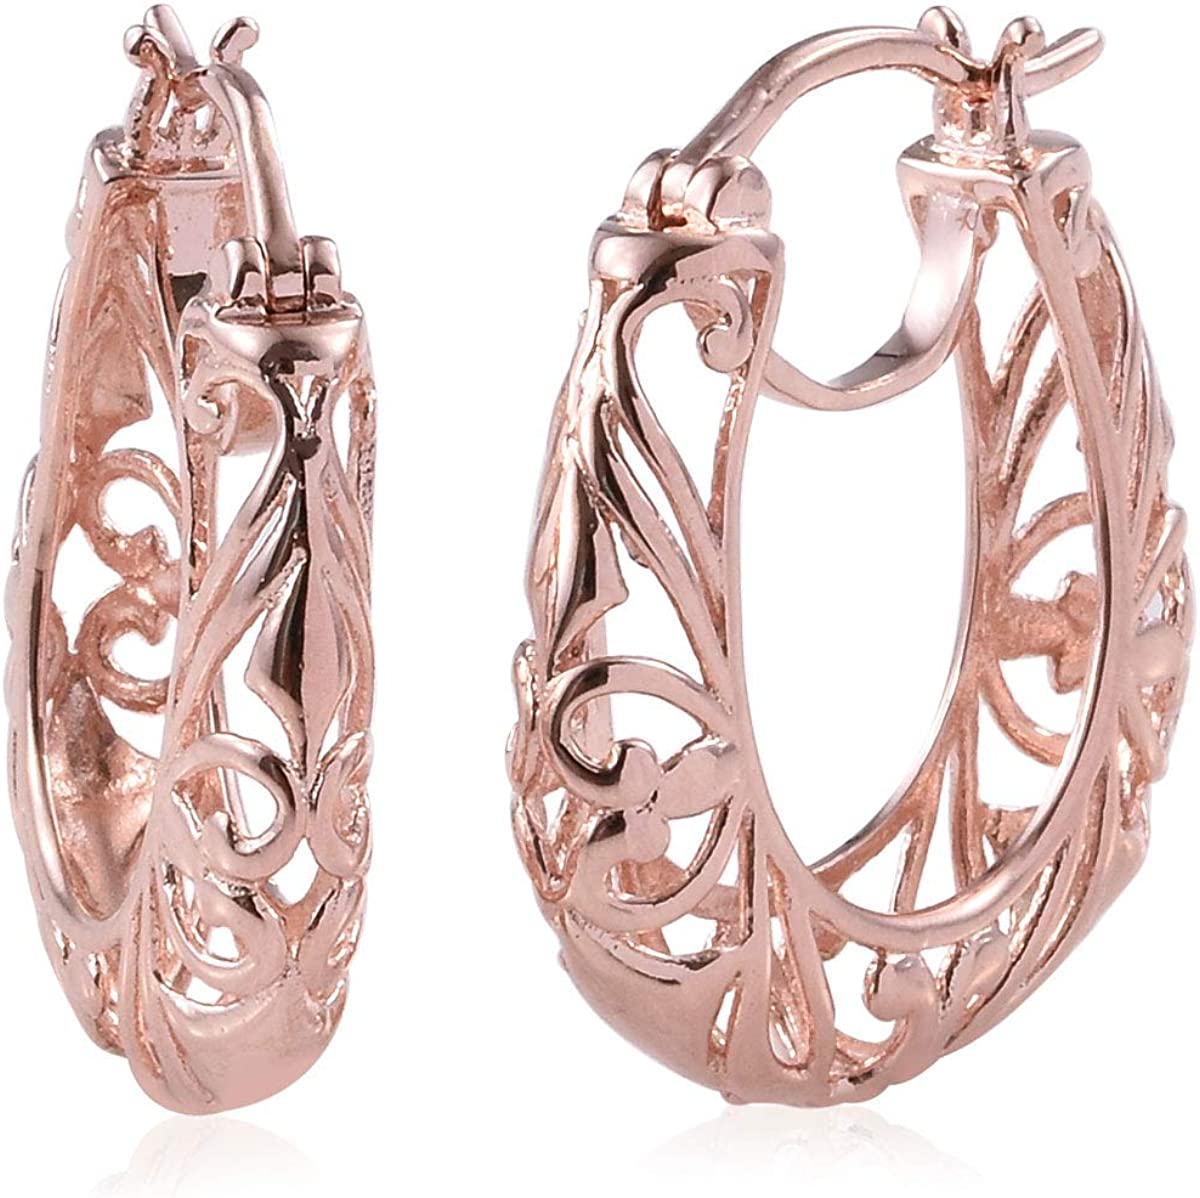 Shop LC Birthday Filigree Openwork Basket Hoops Hoop Earrings Real 14K Yellow Gold/Rose Gold/Platinum ION Plated for Women Jewelry Gifts